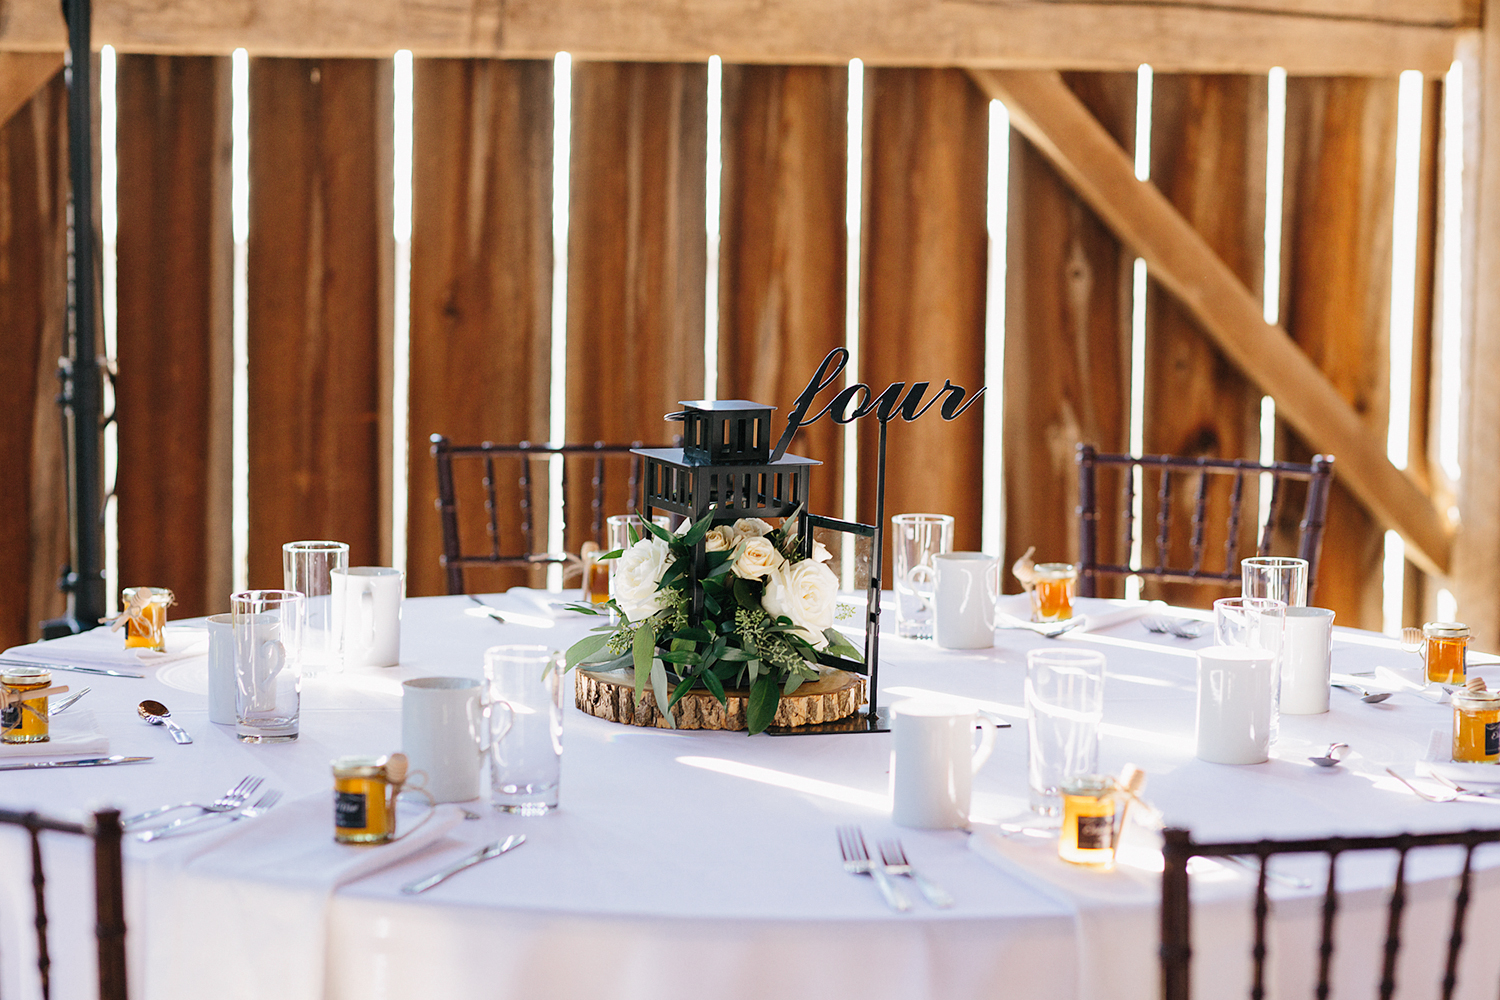 Photojournalistic-Wedding-Photographers-in-Toronto-Candid-Natural-Dowswell-Barn-Wedding-Rustic-GTA-Muskoka-Farm-details-tablescapes-rustic-diy-wood-platters.jpg